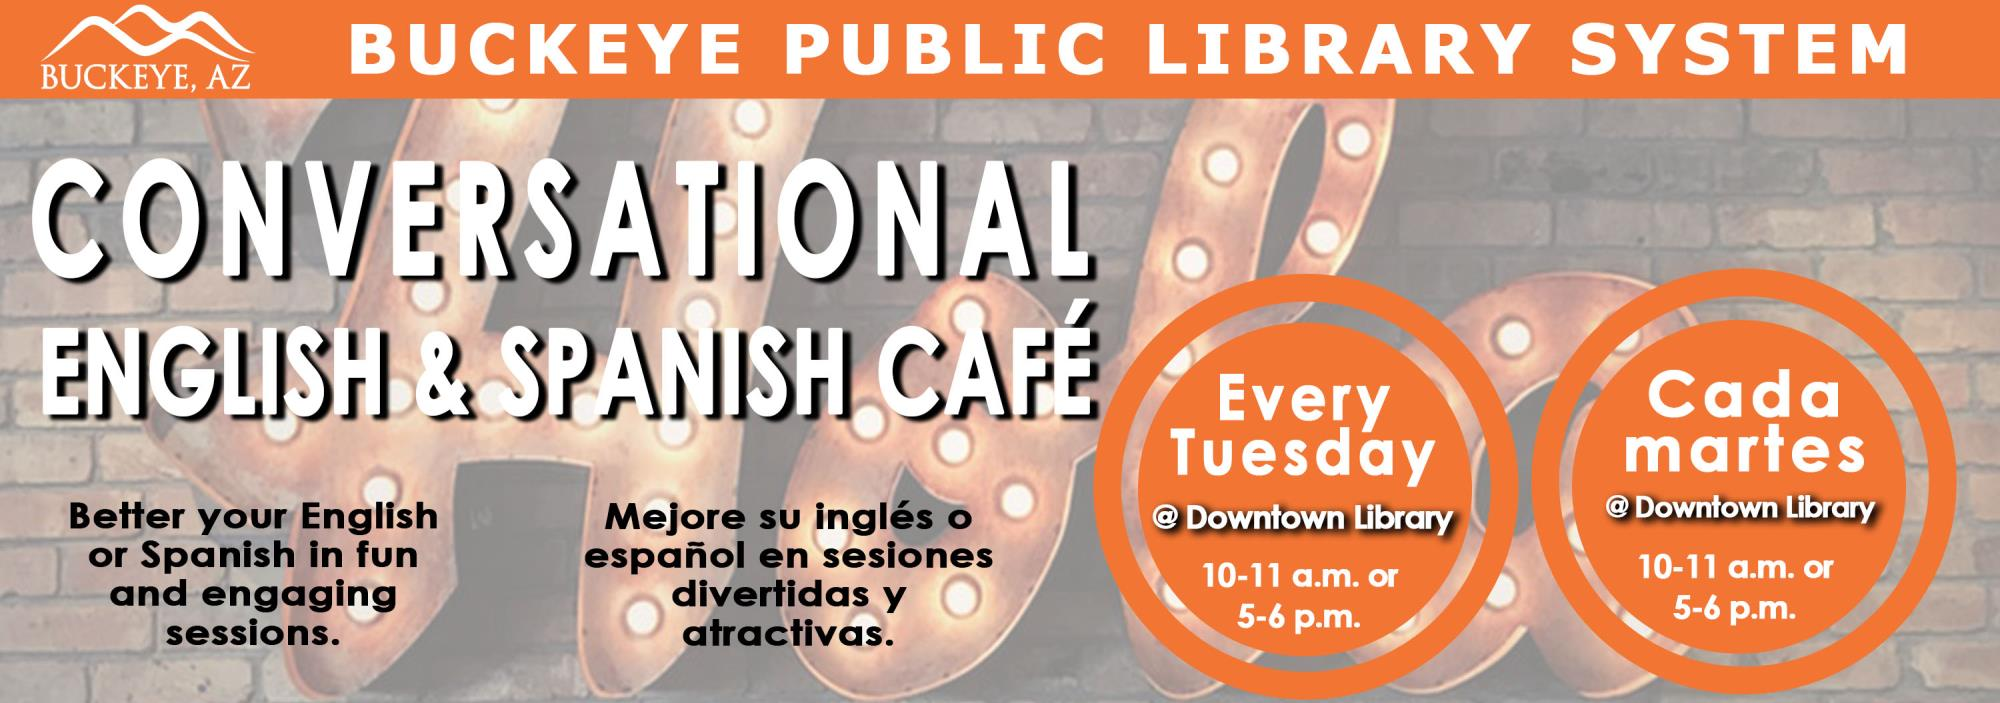 Banner Image for Spanish English Cafe